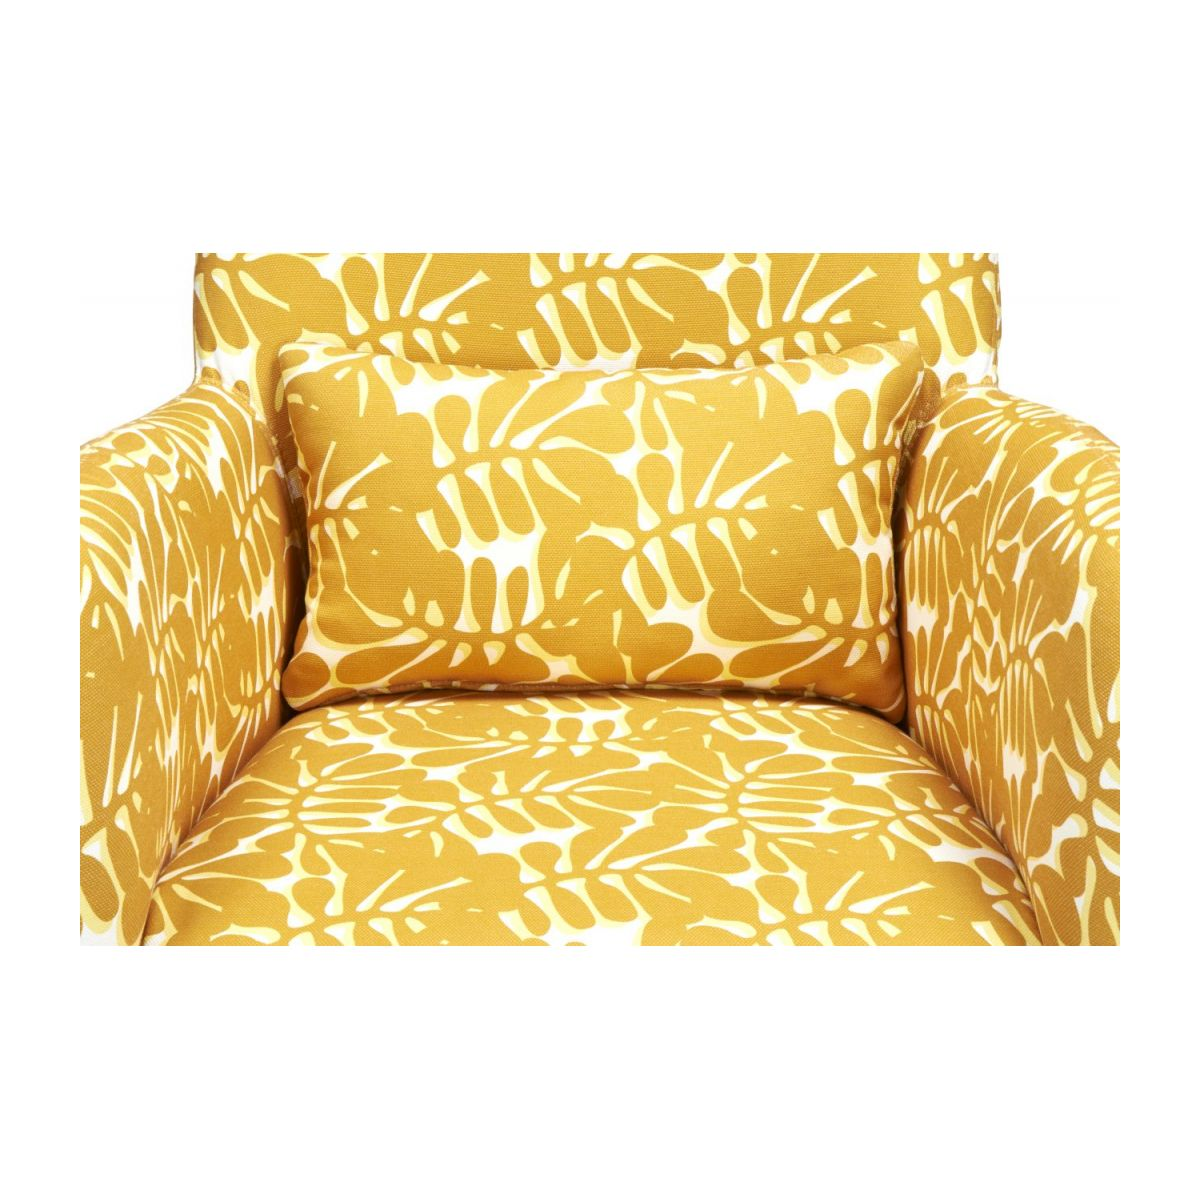 Armchair with yellow patterns n°6